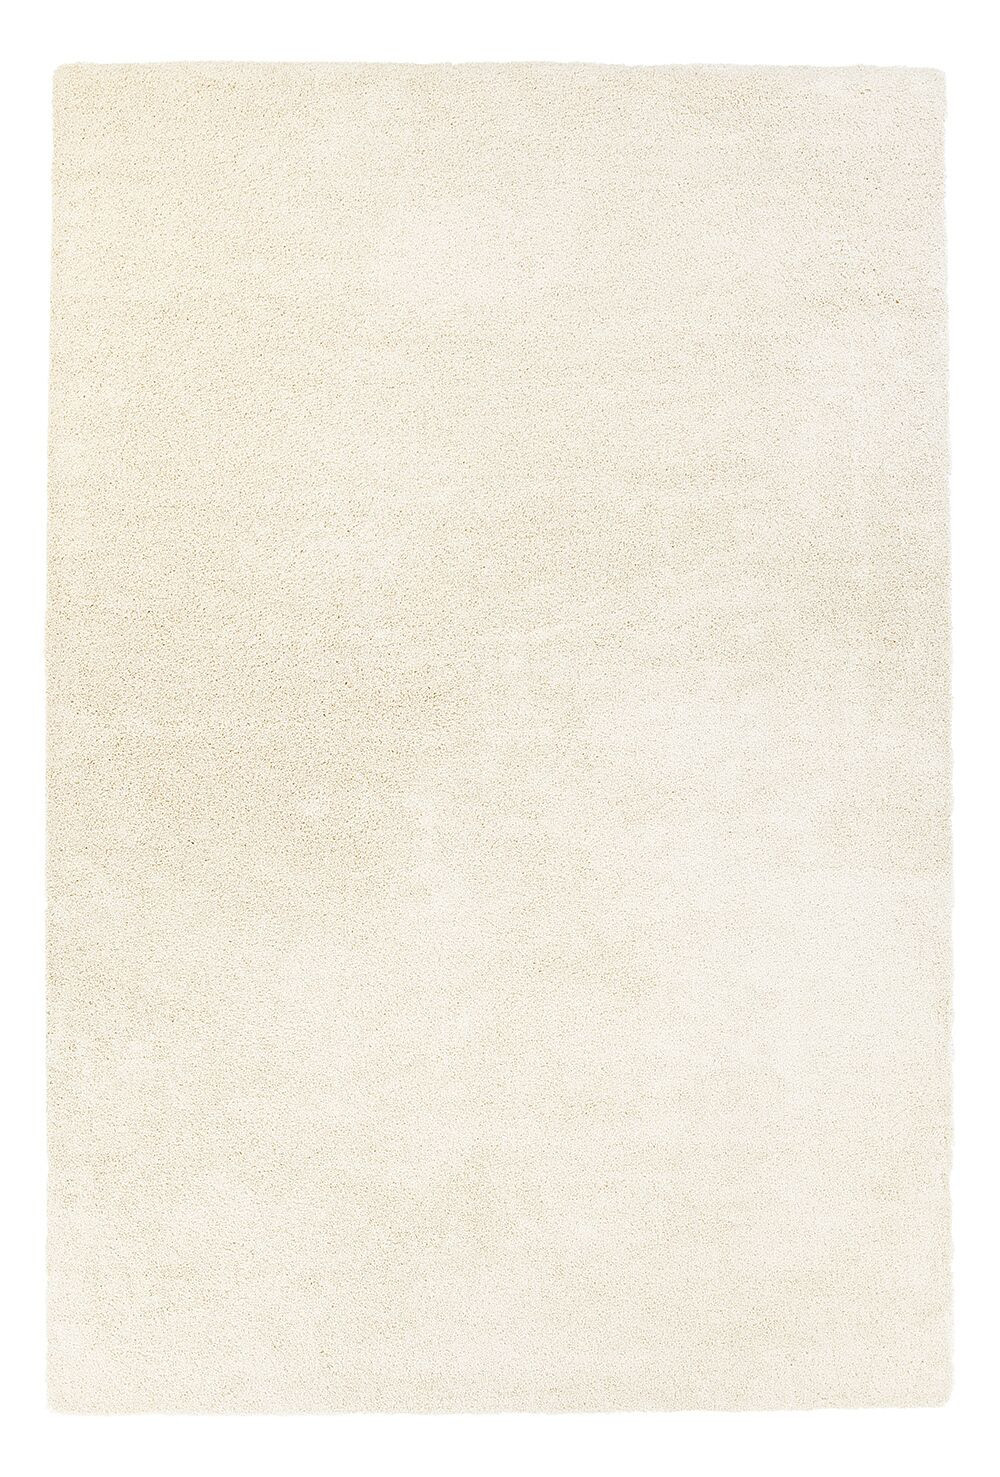 Elysee matto 160 x 230 cm, 11 pure white